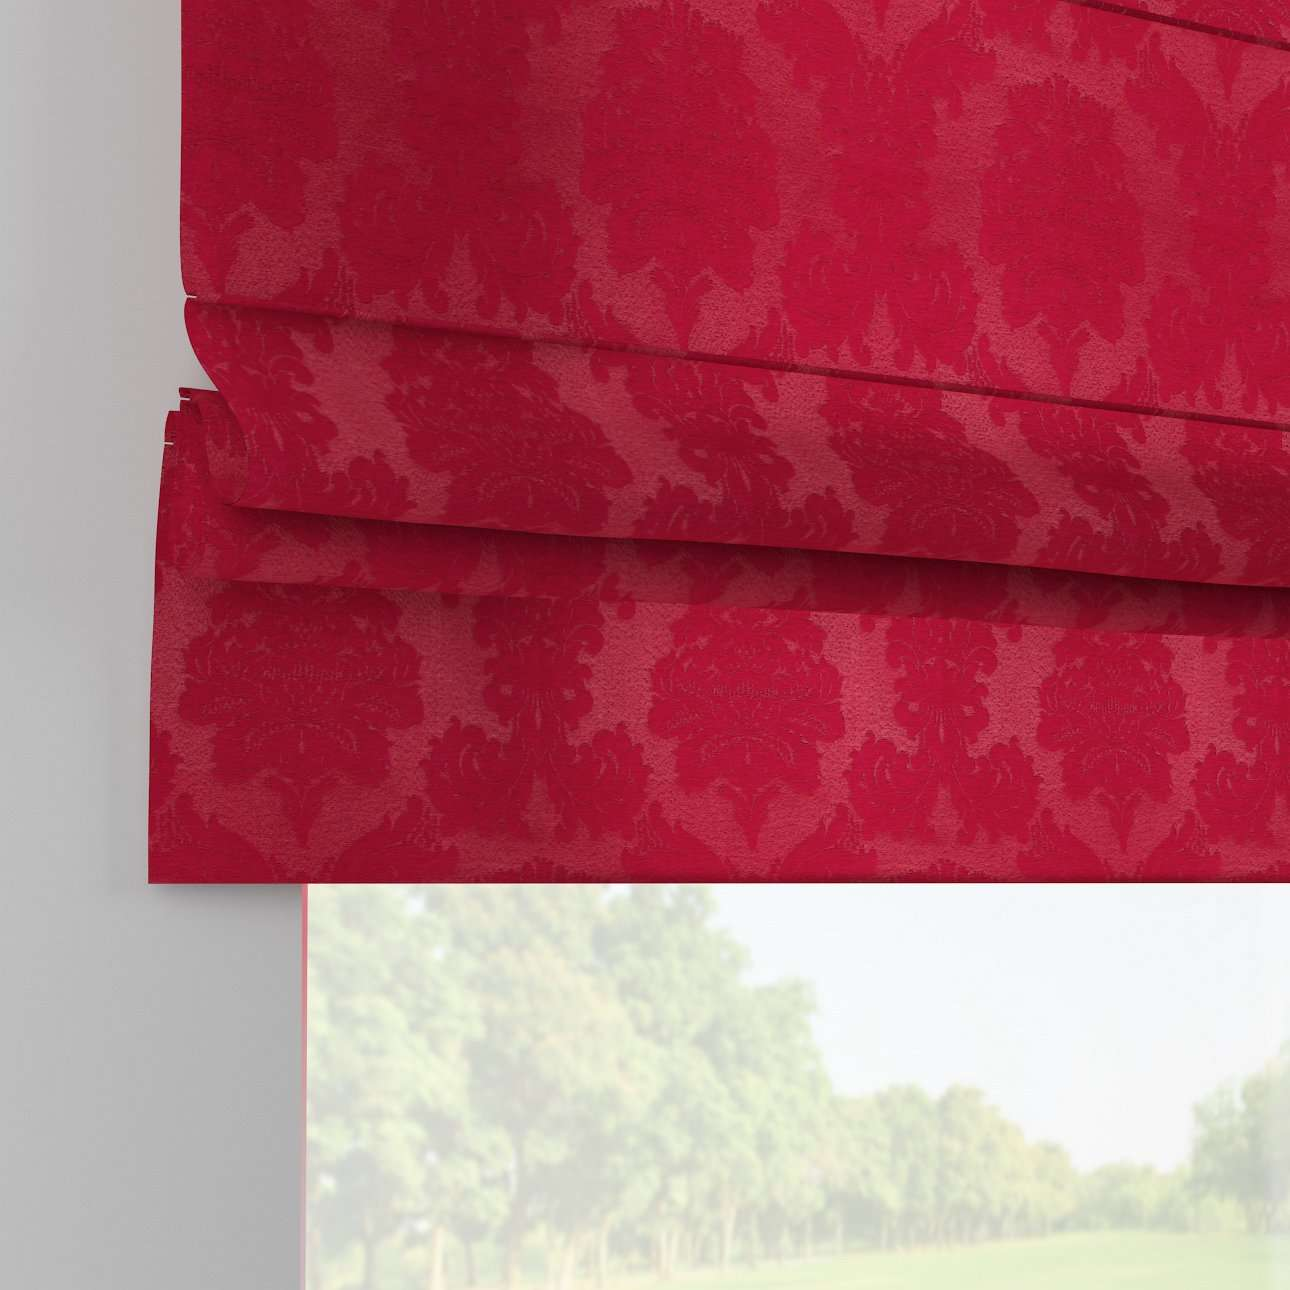 Padva roman blind  80 x 170 cm (31.5 x 67 inch) in collection Damasco, fabric: 613-13